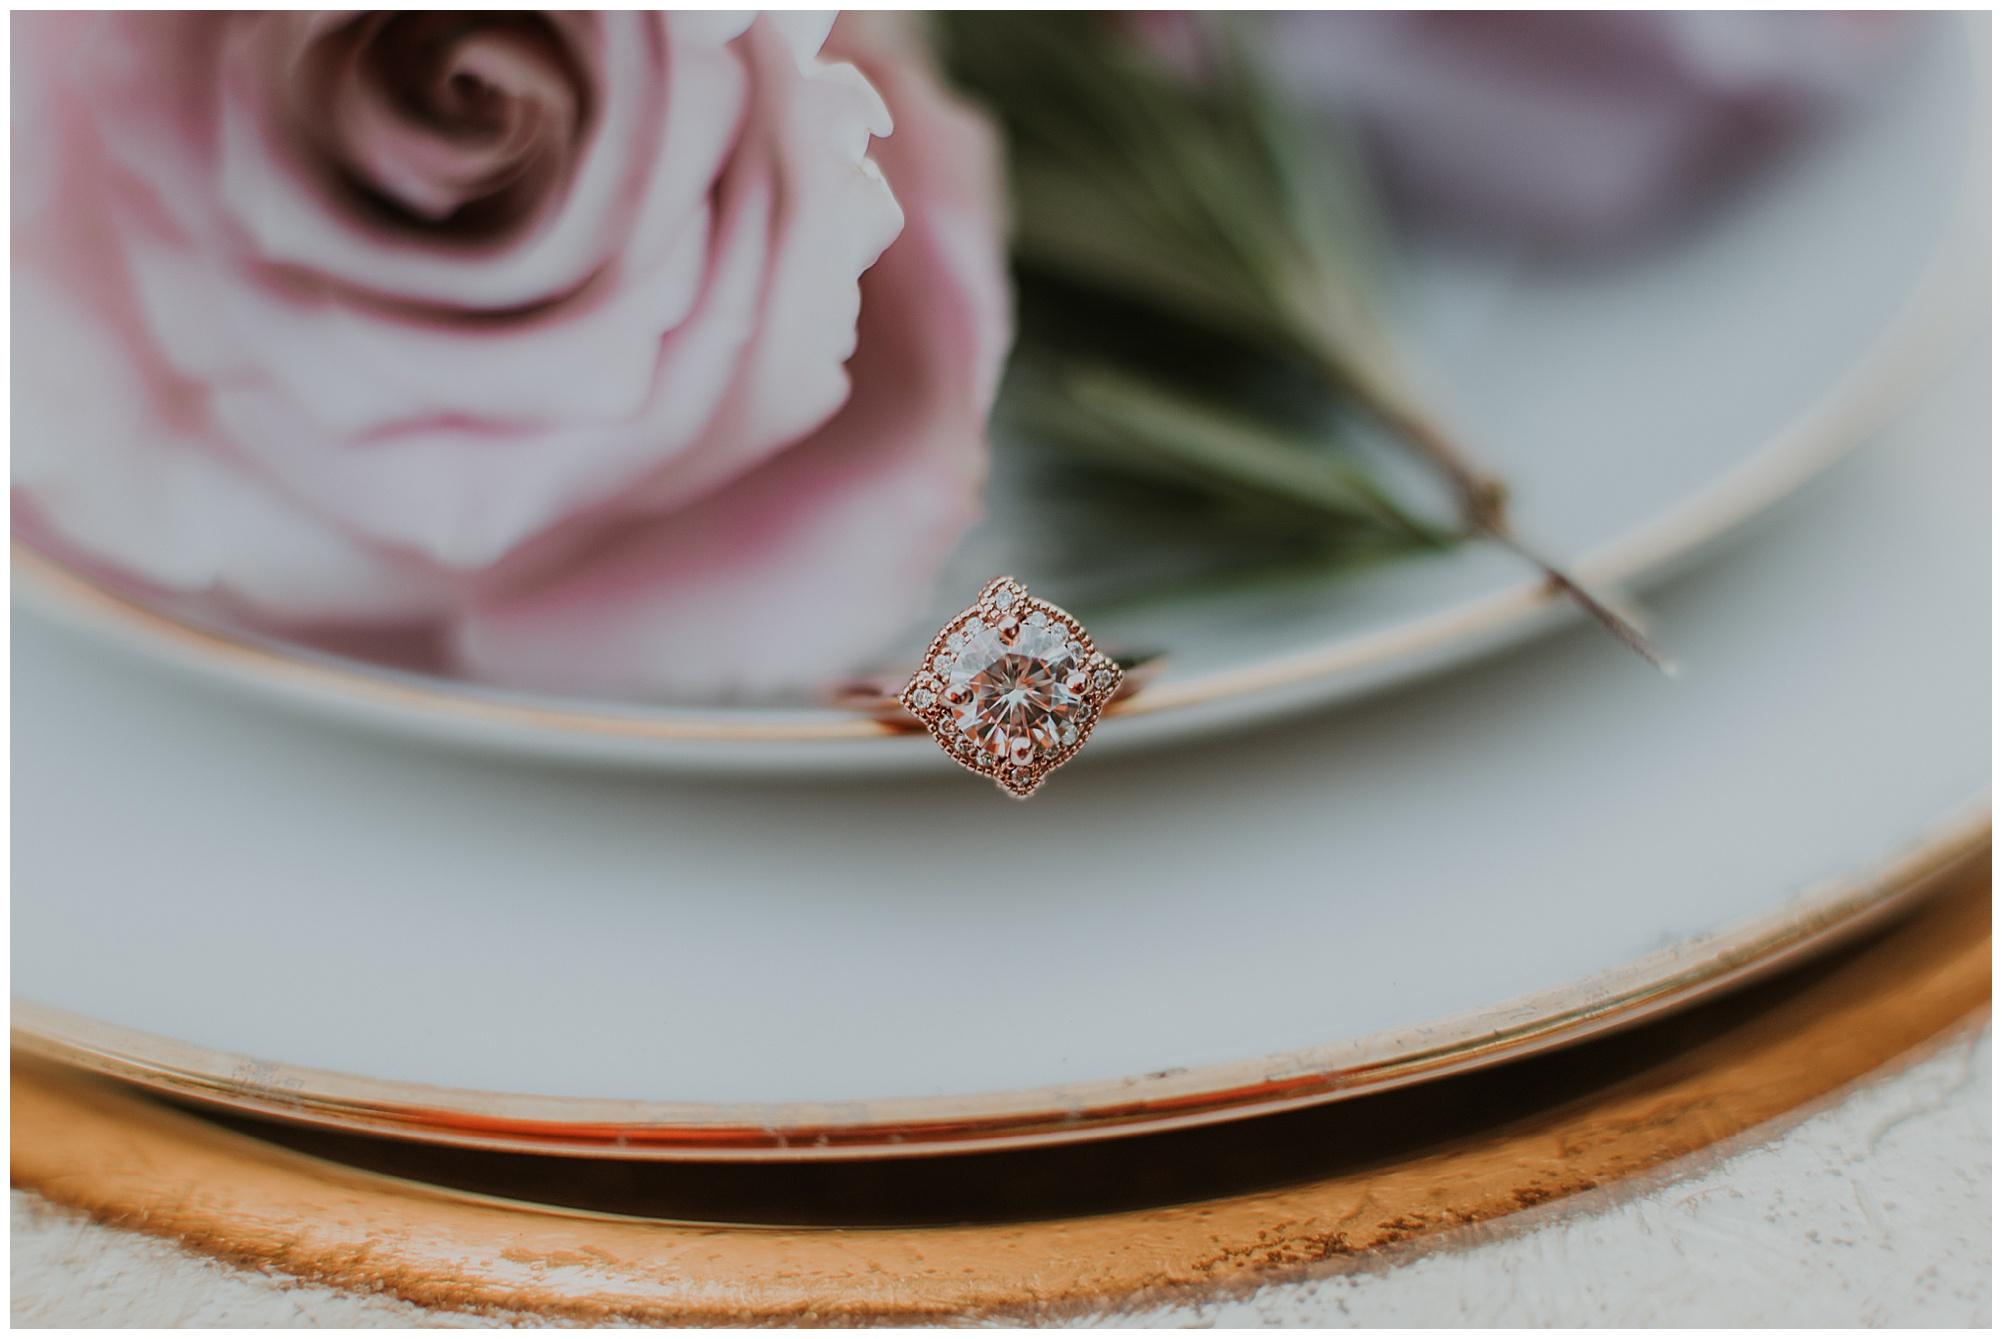 rose gold wedding ring with diamonds on gold guilded place setting. vintage inspired. elegant. roses.